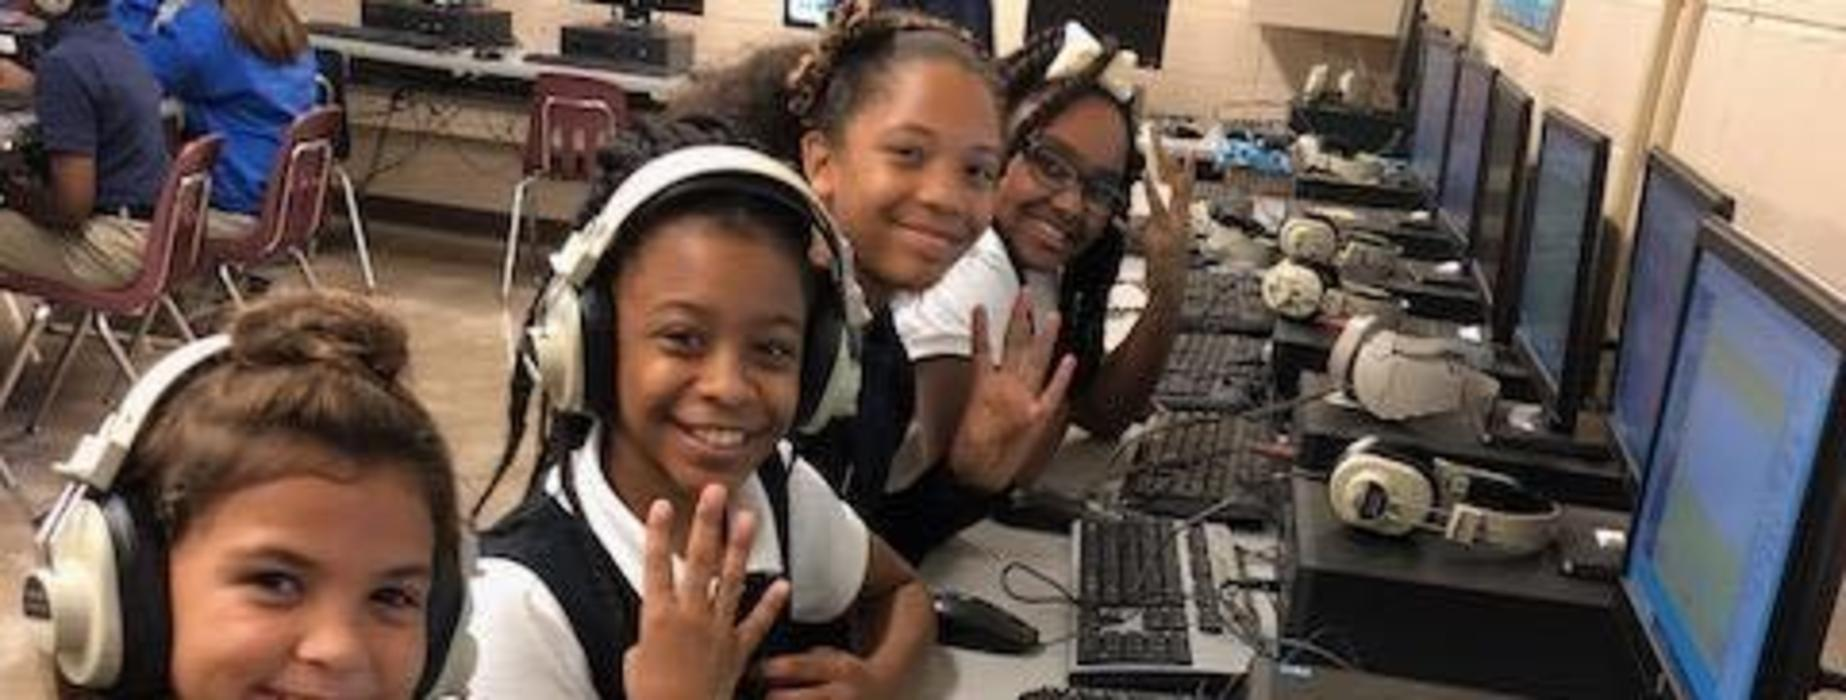 4th Graders Being Silly in Computer Lab while using Google Earth